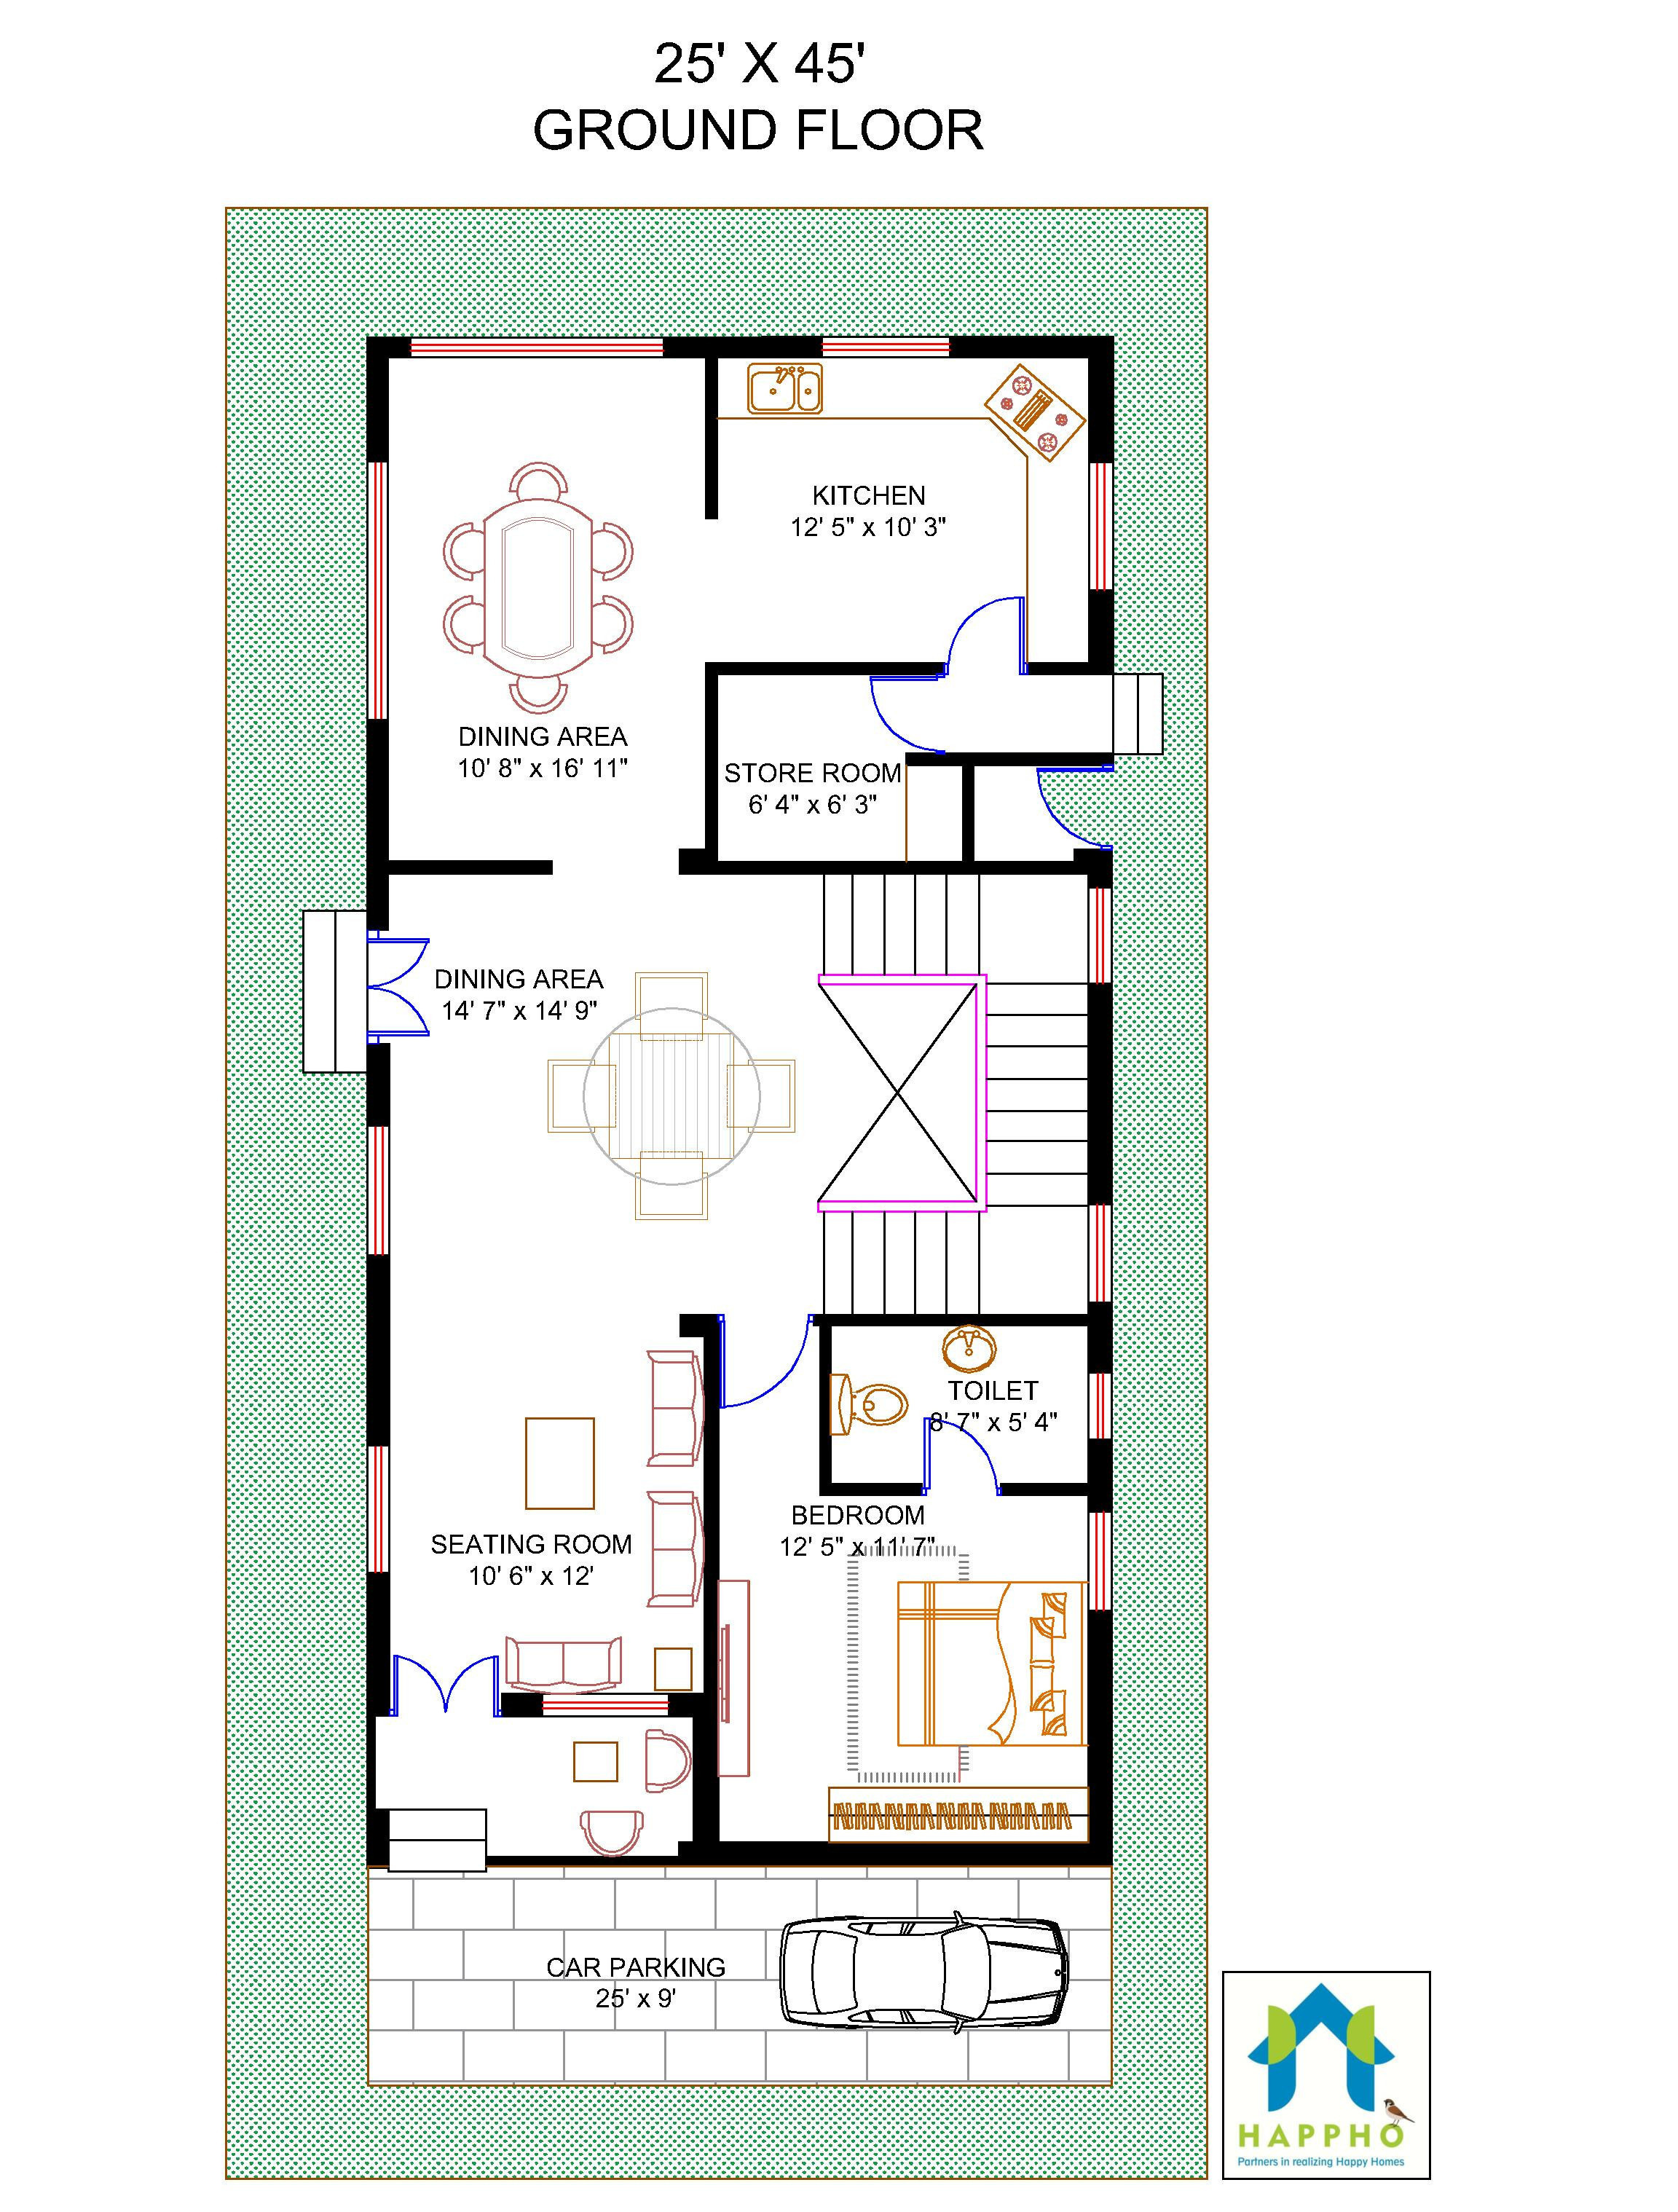 how much does a hardwood floor cost per square foot of house plans that cost 150 000 to build architecture two storey house pertaining to house plans that cost 150 000 to build 150 sq ft tin